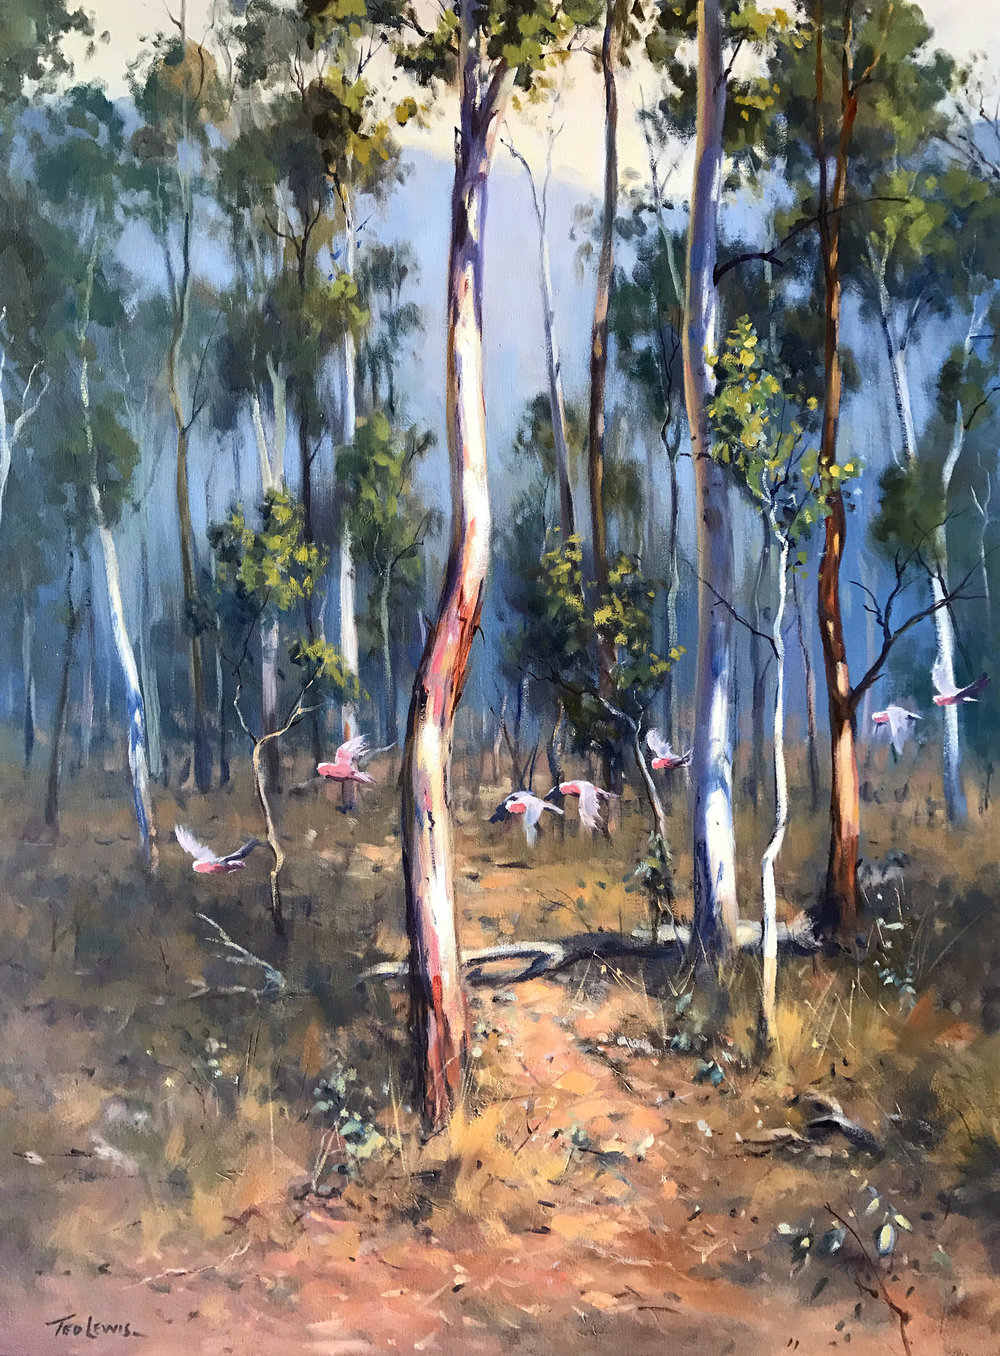 Ted Lewis Among the Saplings102x76 #17253